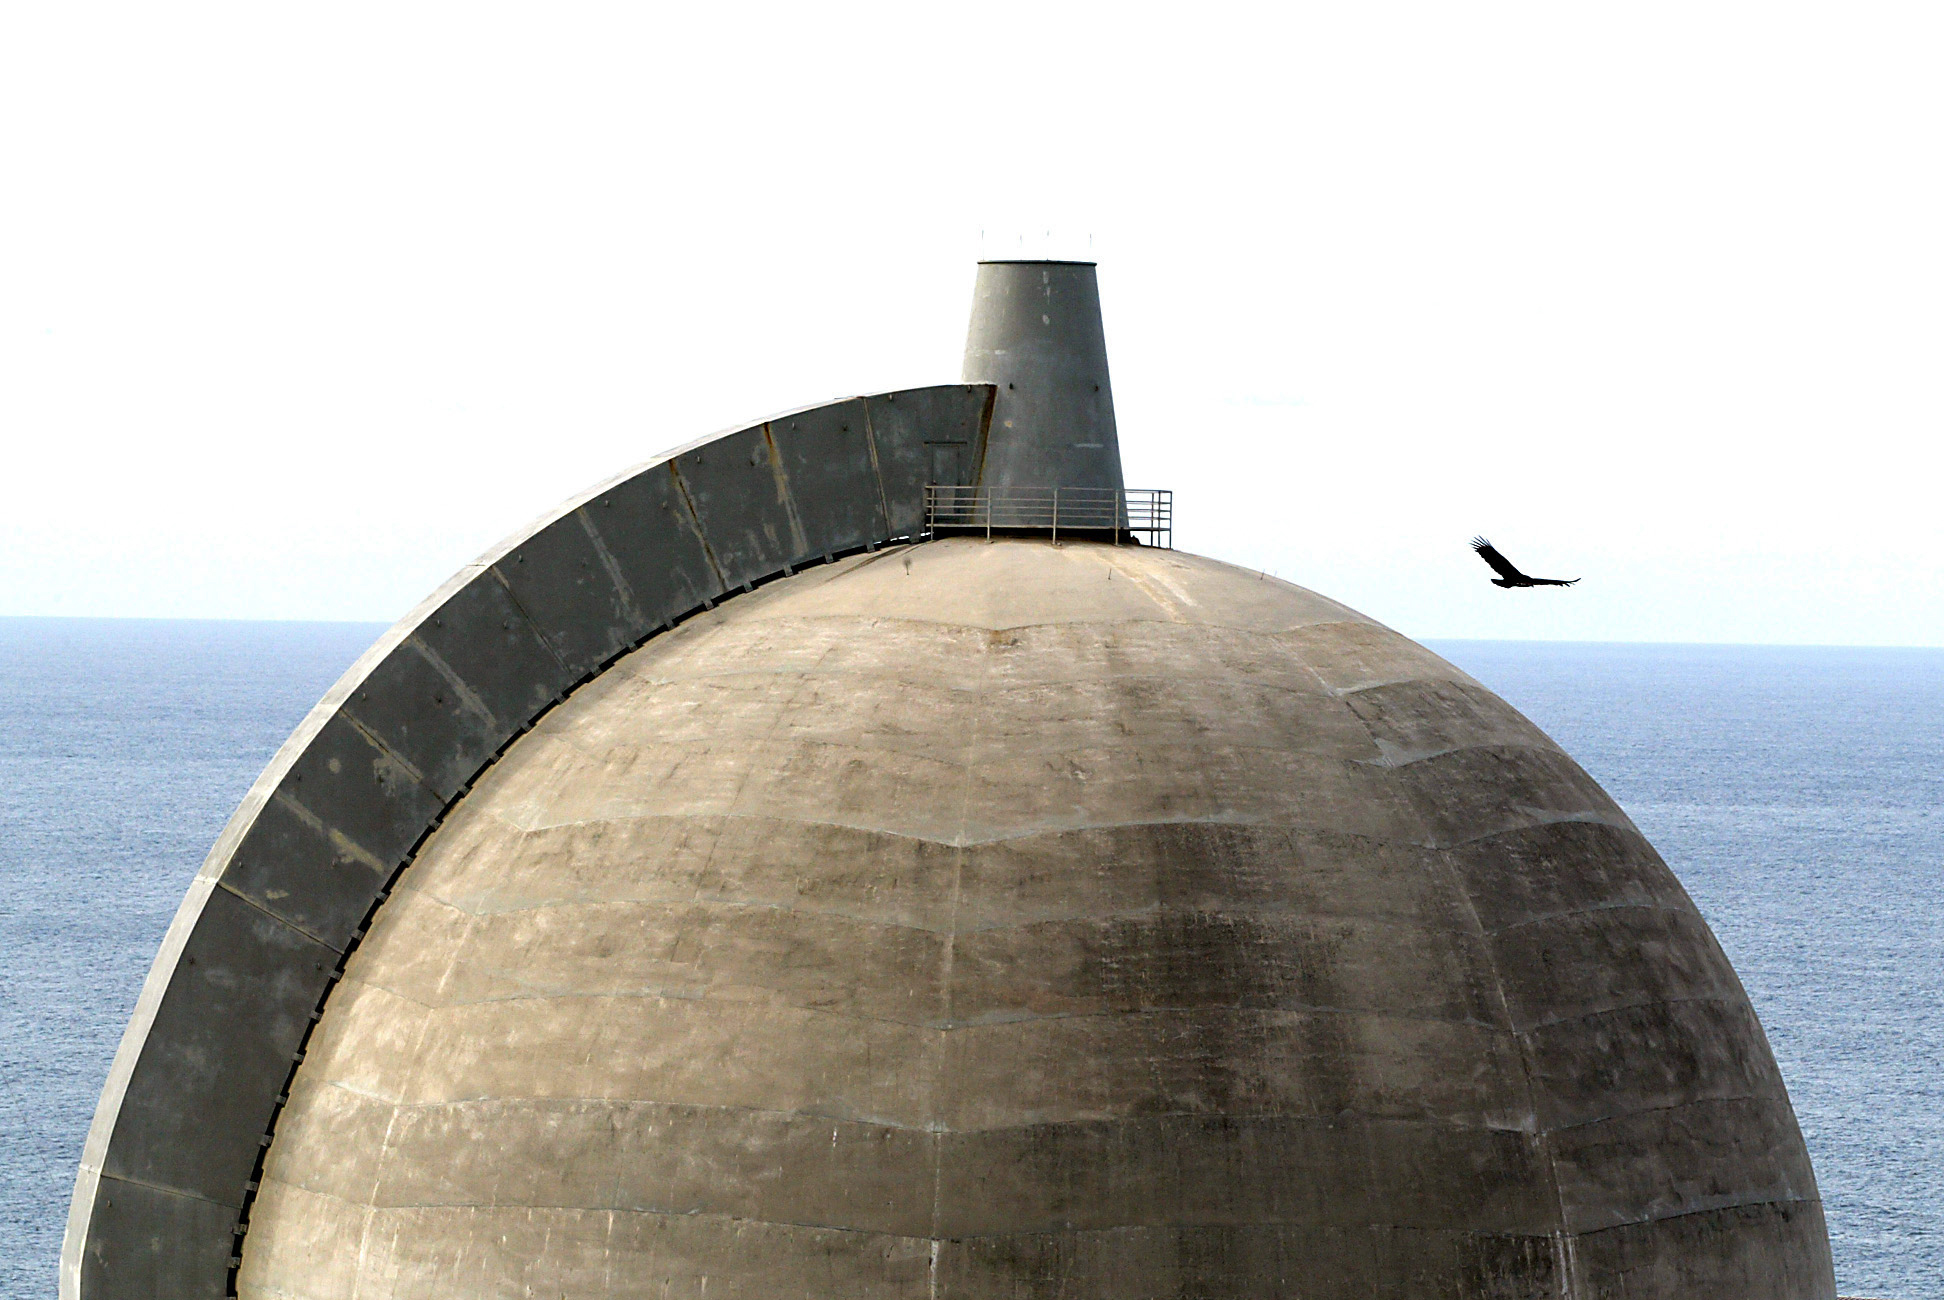 PG&E overlooked key seismic test at Diablo Canyon nuclear plant